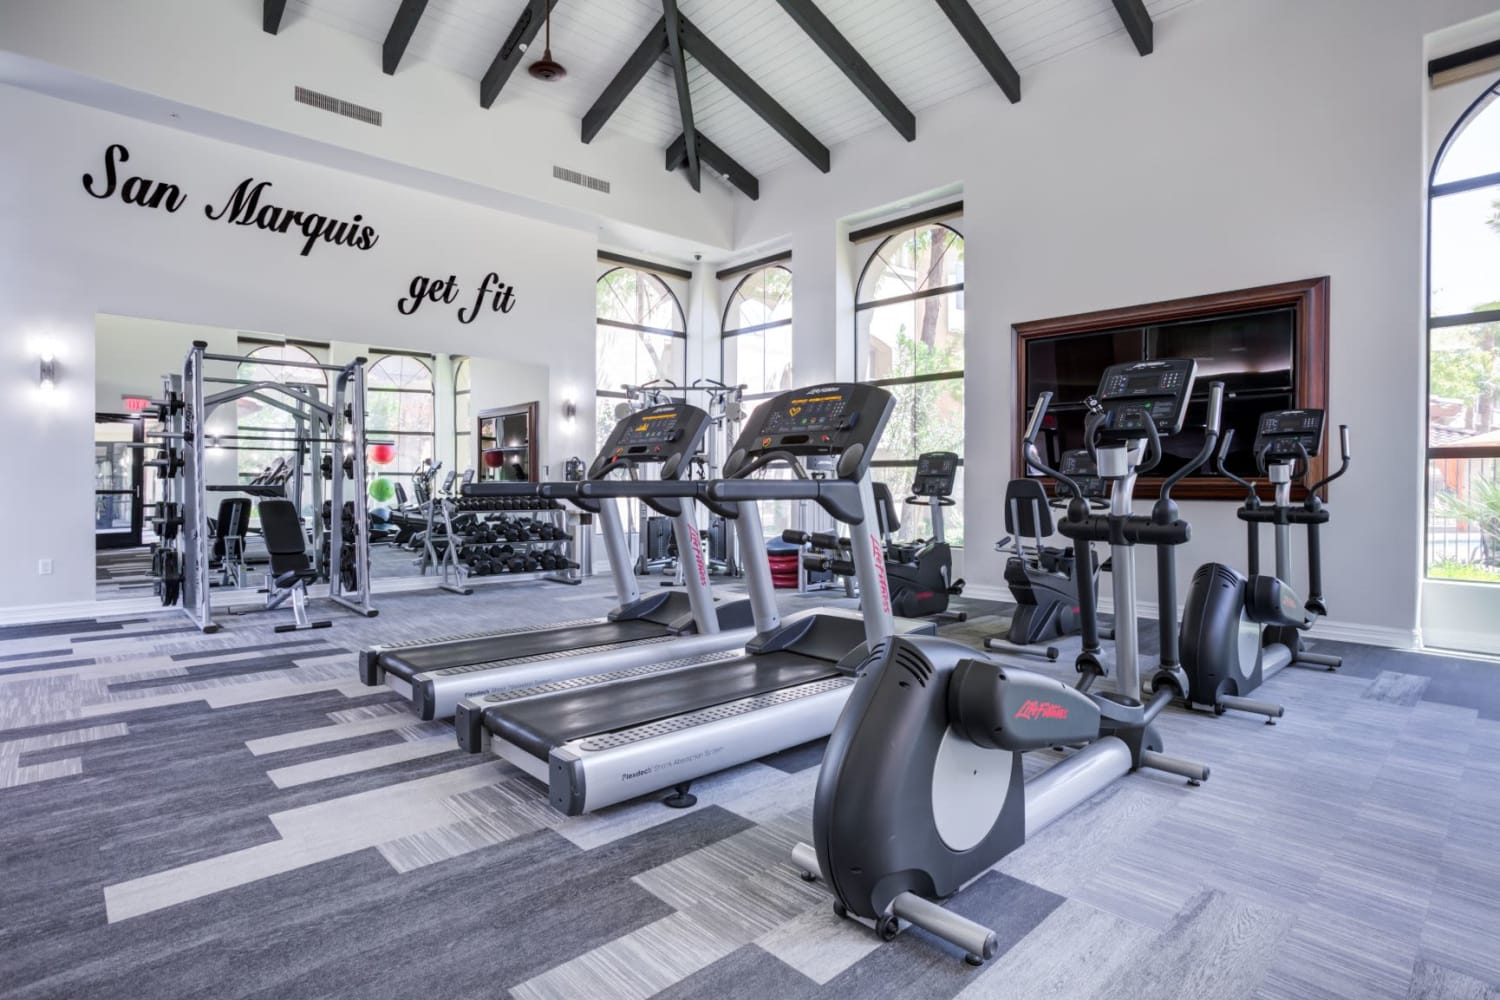 State-of-the-art fitness center at San Marquis in Tempe, Arizona